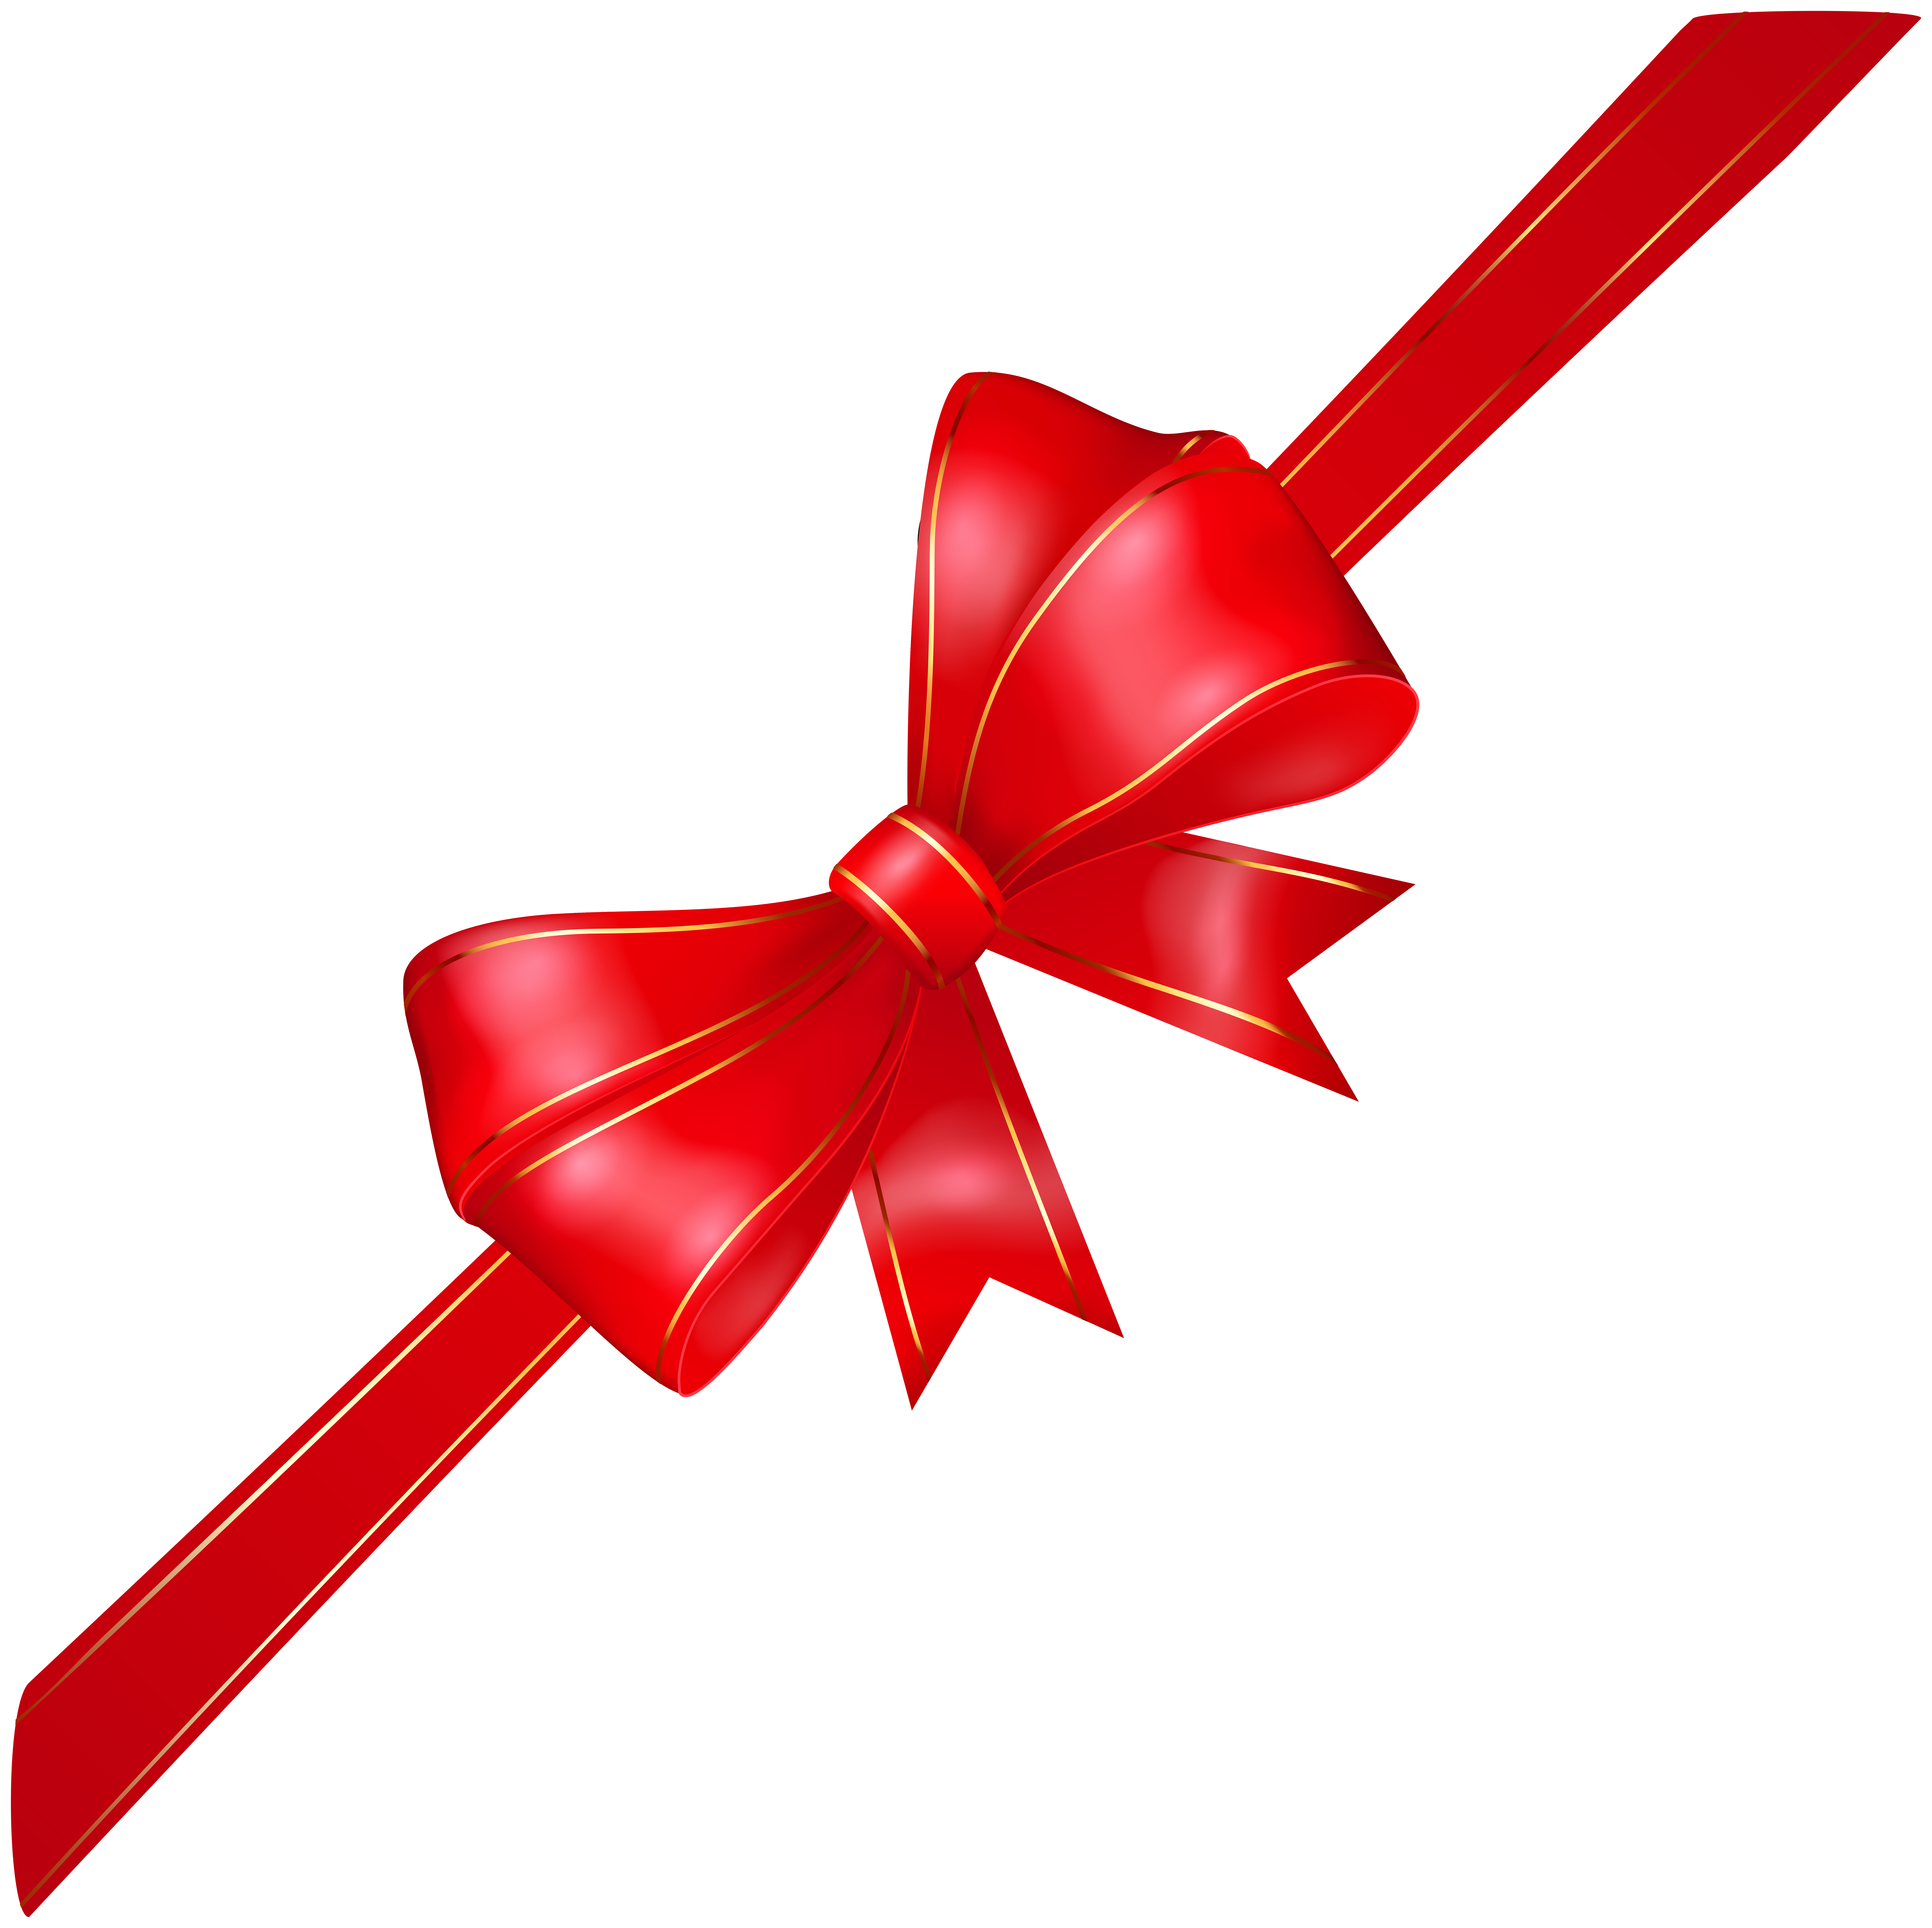 Red transparent png image. Clipart bow corner